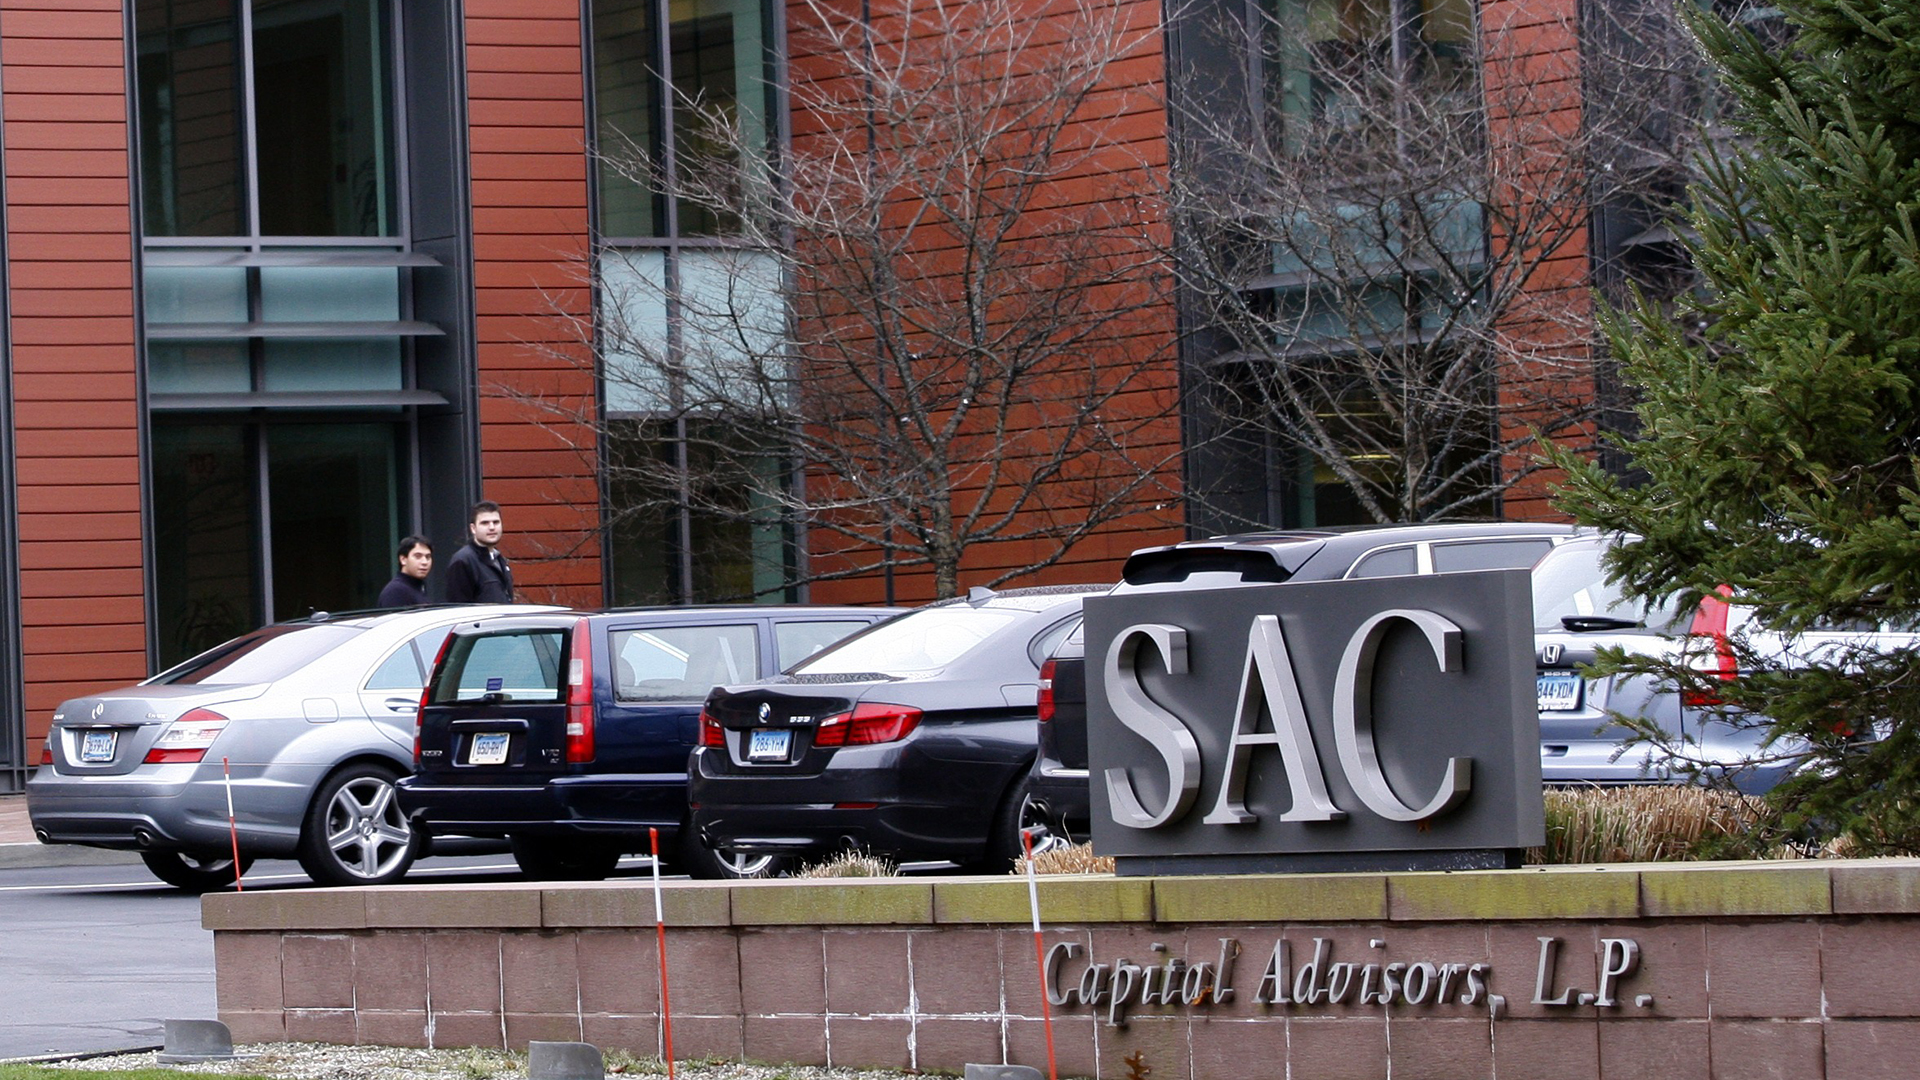 Image: File photo of the exterior of Headquarters of SAC Capital Advisors, L.P. in Stamford